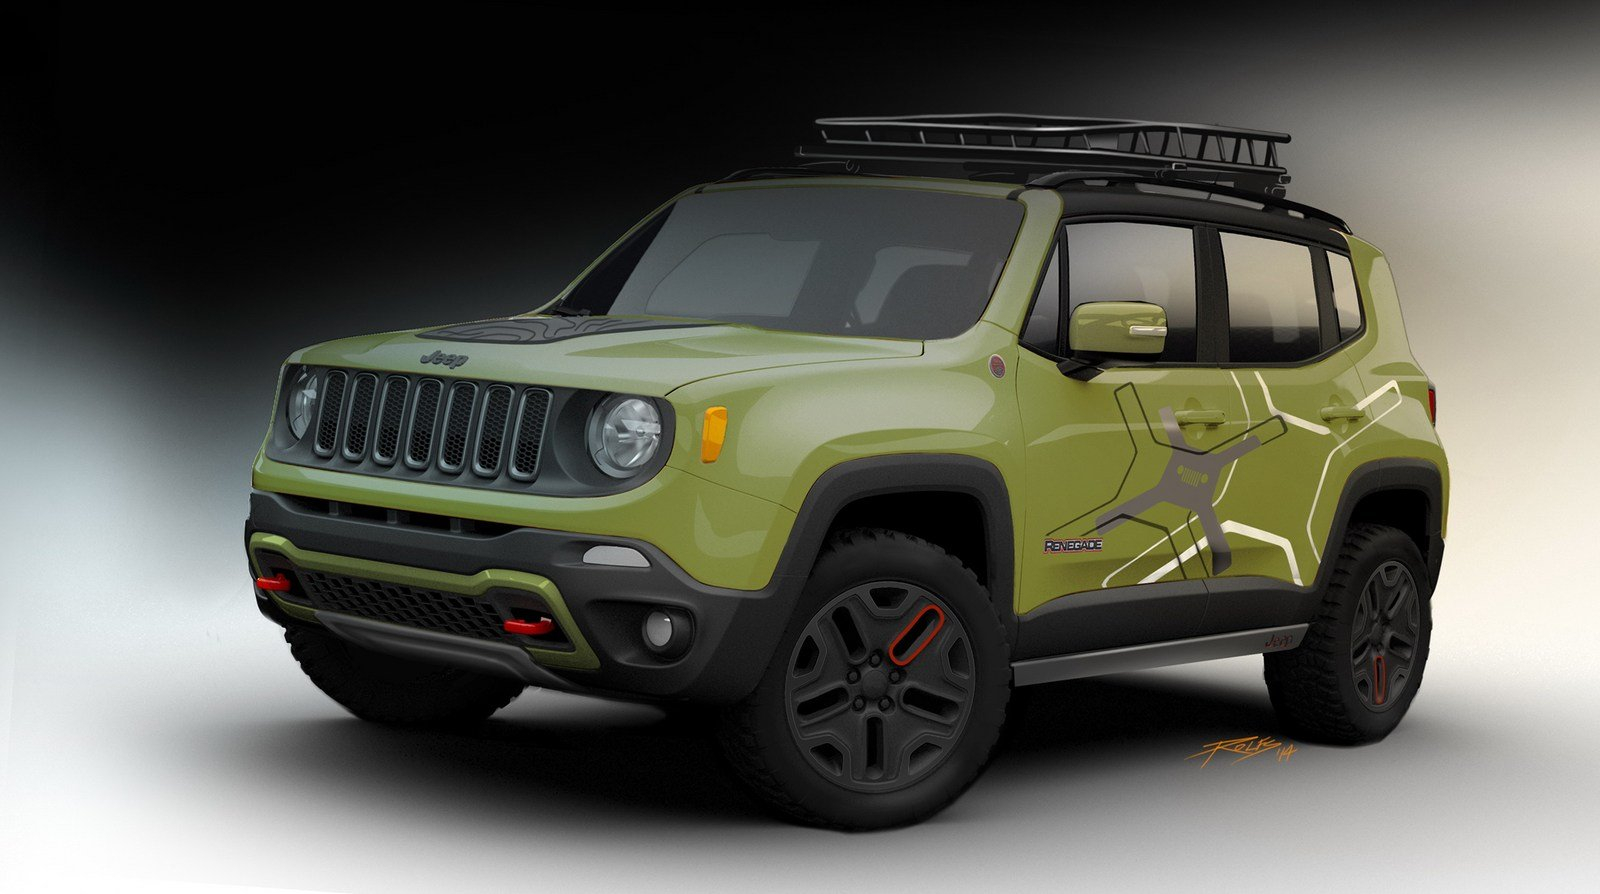 2015 jeep renegade off road mopar equipped review gallery top speed. Black Bedroom Furniture Sets. Home Design Ideas